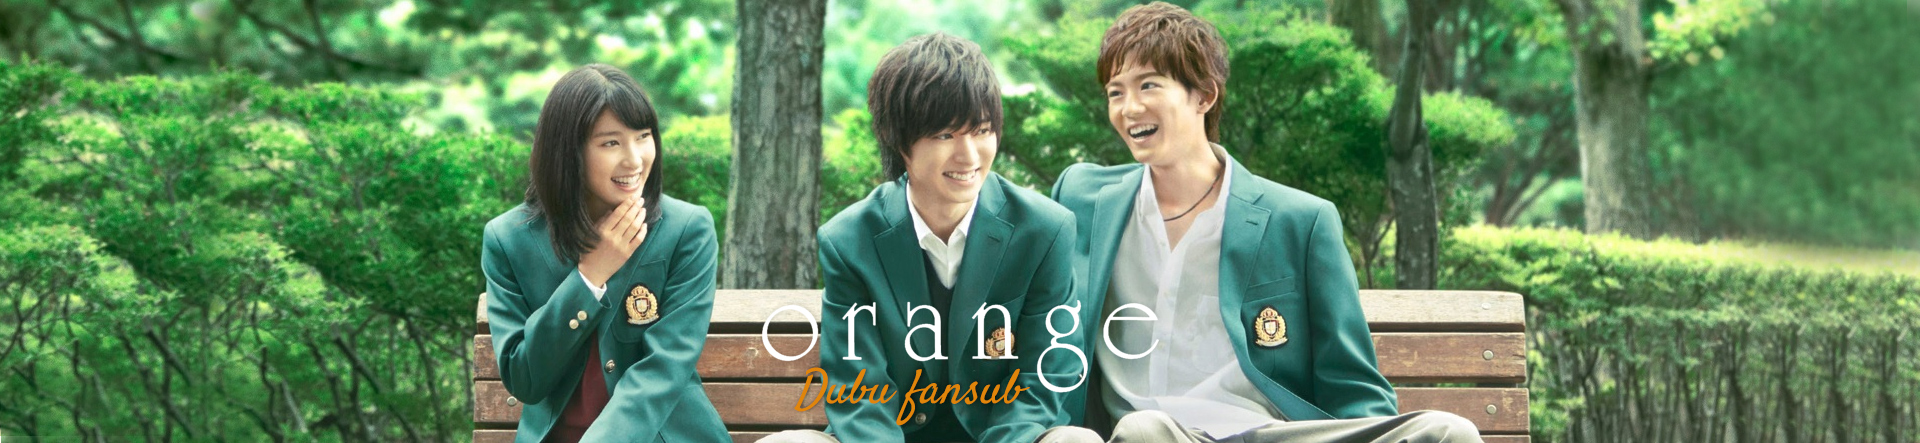 orange-live-action-banner-vostfr